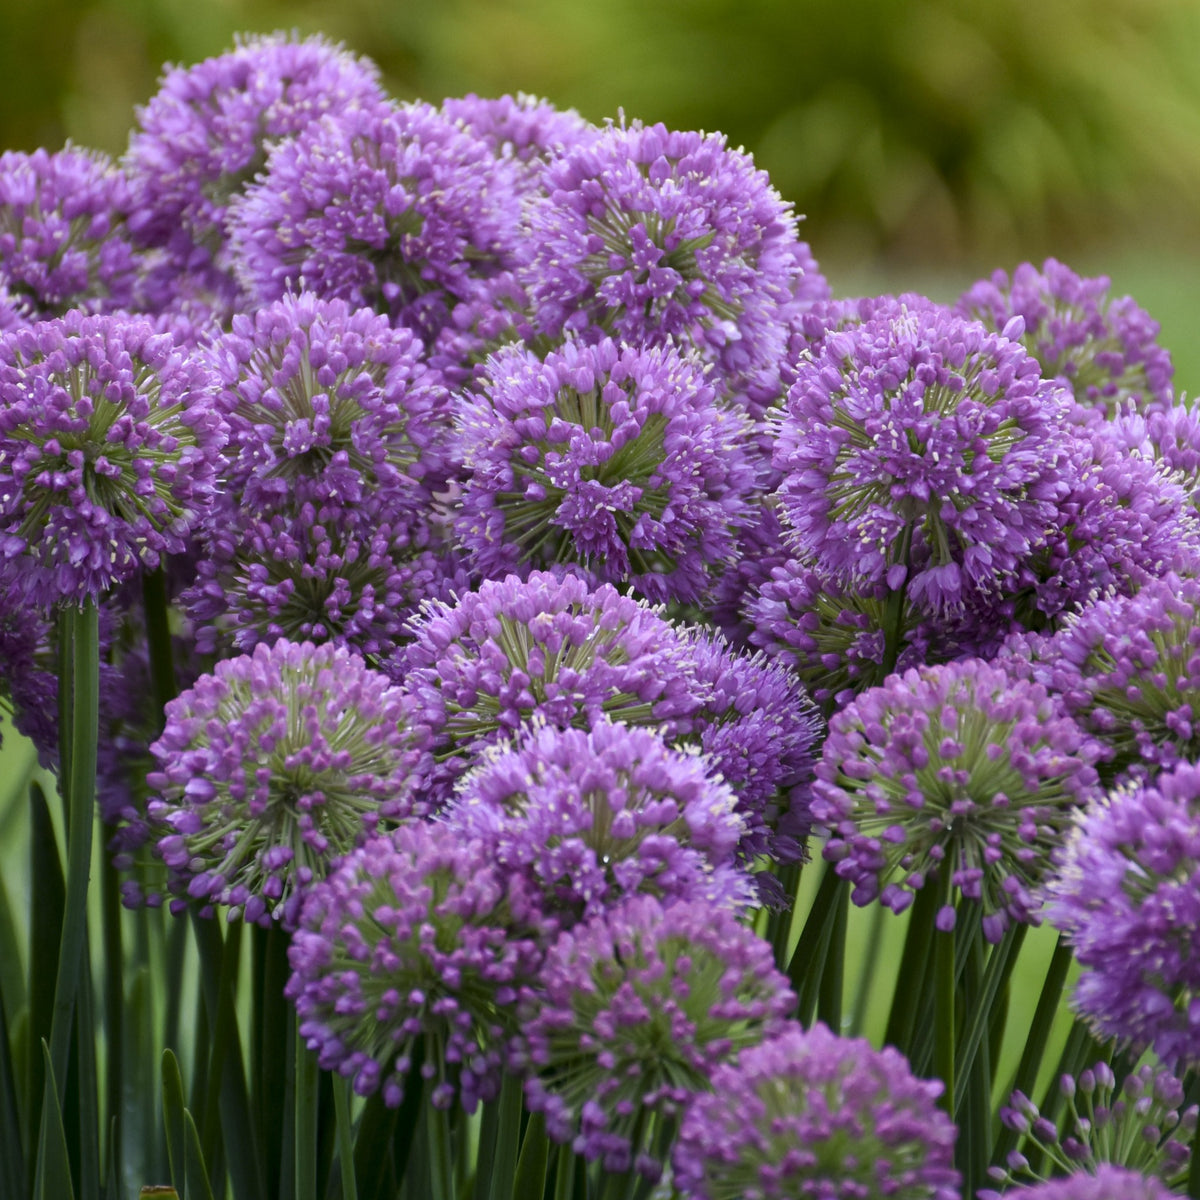 'Serendipity' Ornamental Onion (Allium)